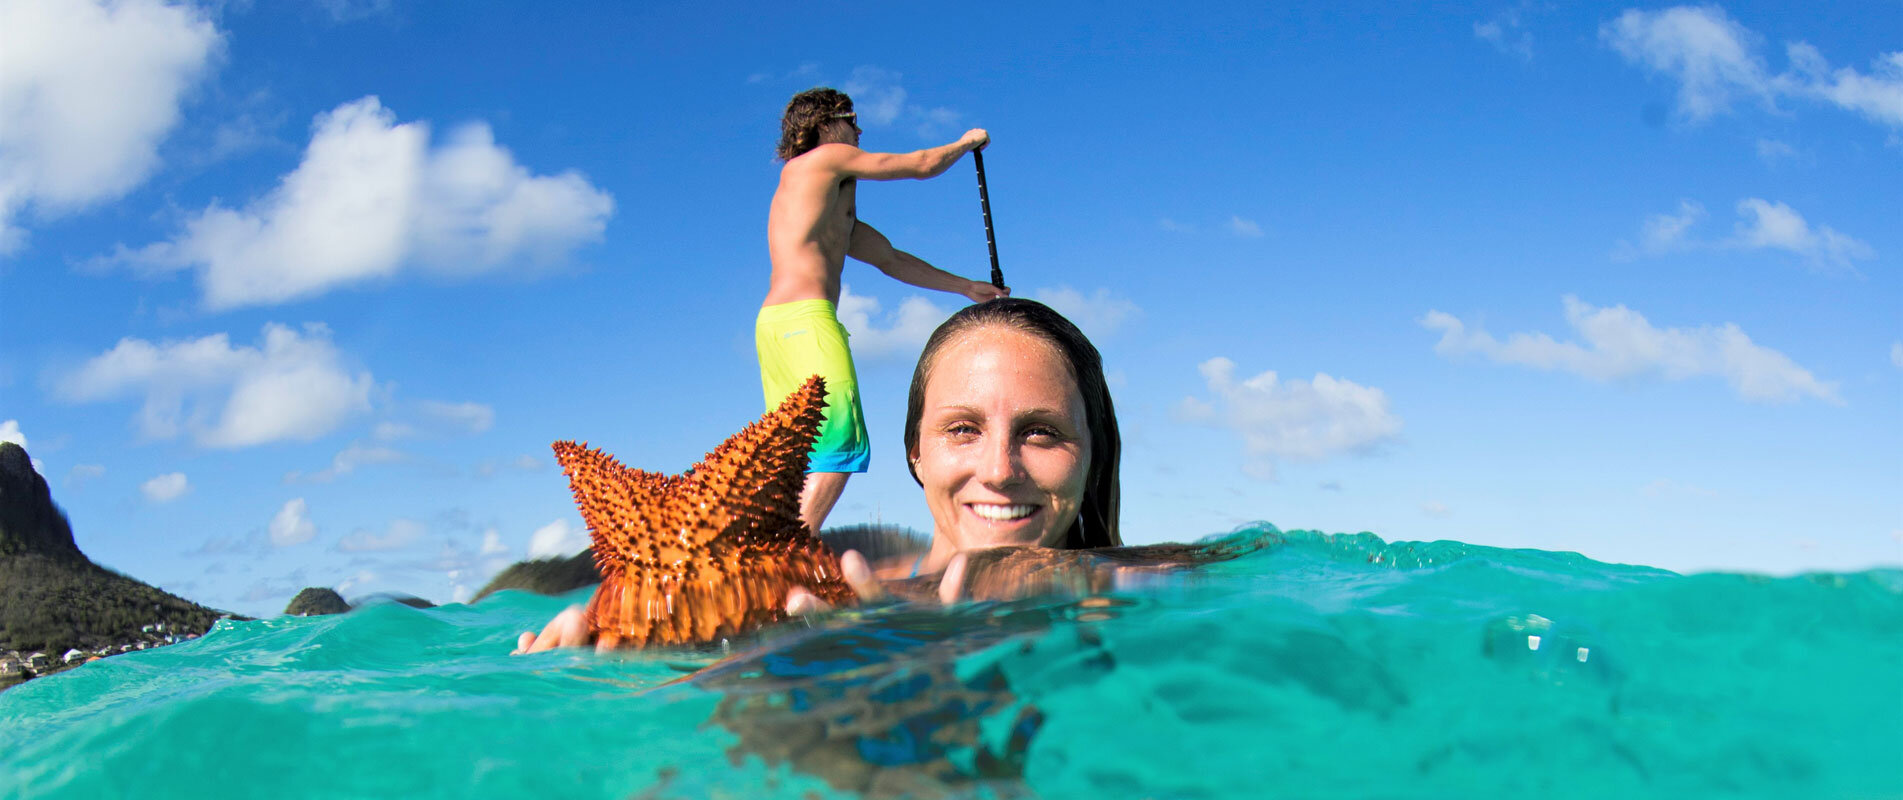 Snorkeling-and-paddleboard-in-the-Caribbean-Grenadines-with-kite-cruise.jpg